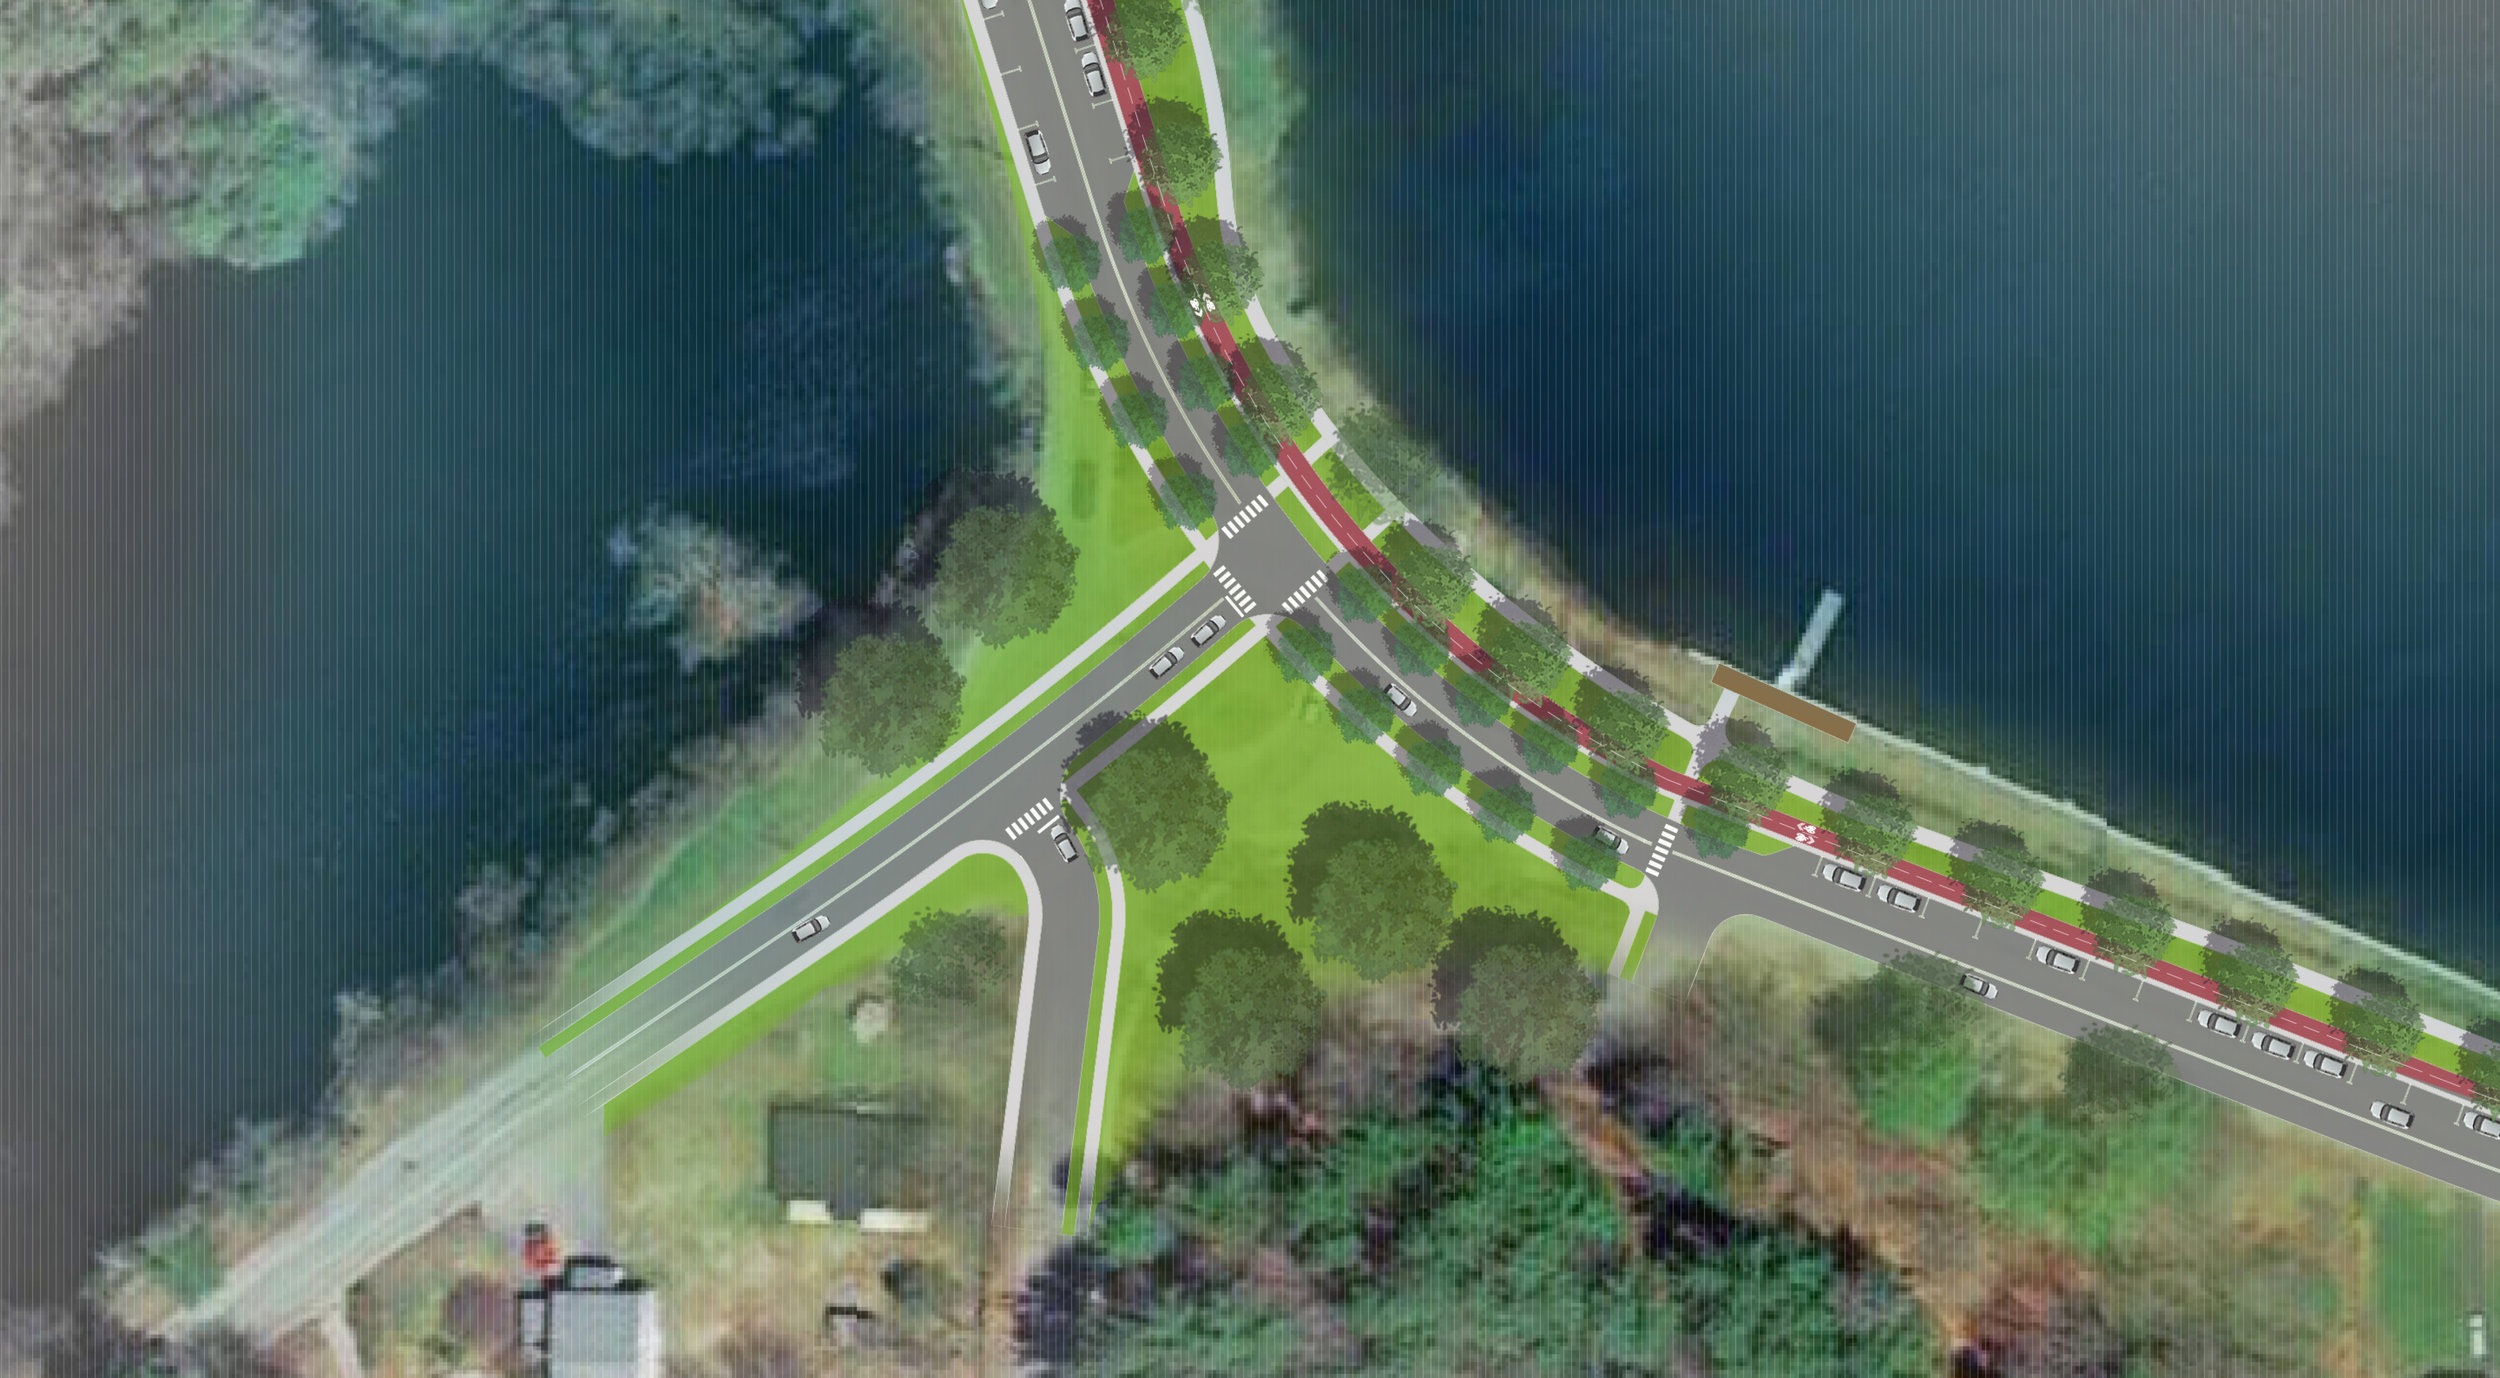 15 ALA - SANFORD Roundabout Proposed.jpg